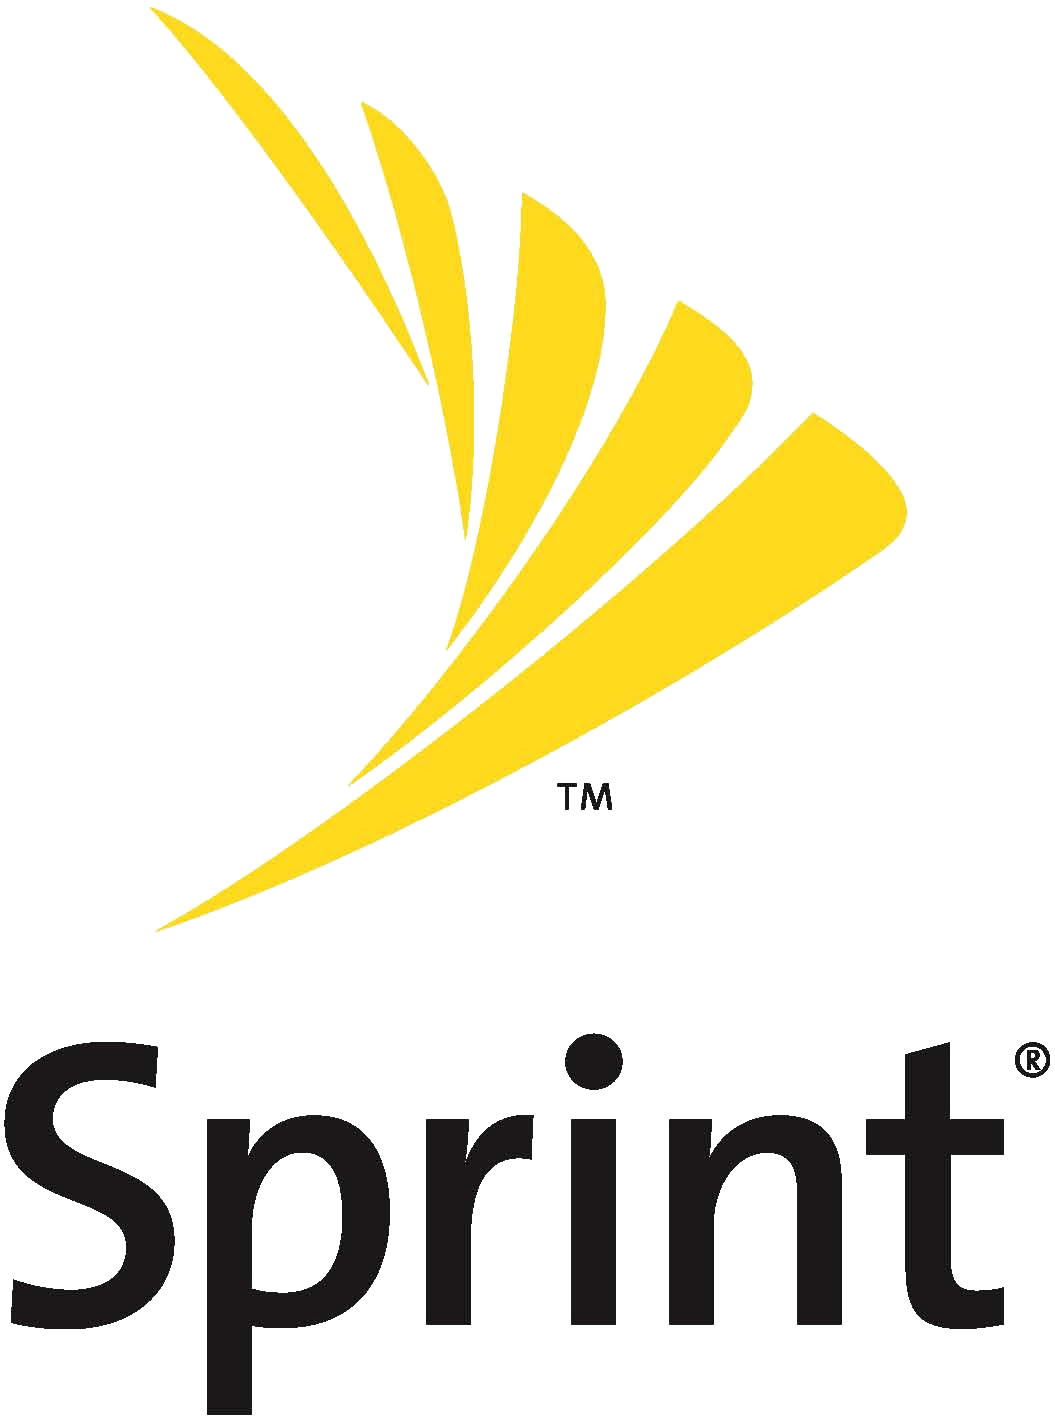 Sprint Suffers Another Shipment Delay, This Time with the Samsung Galaxy S III